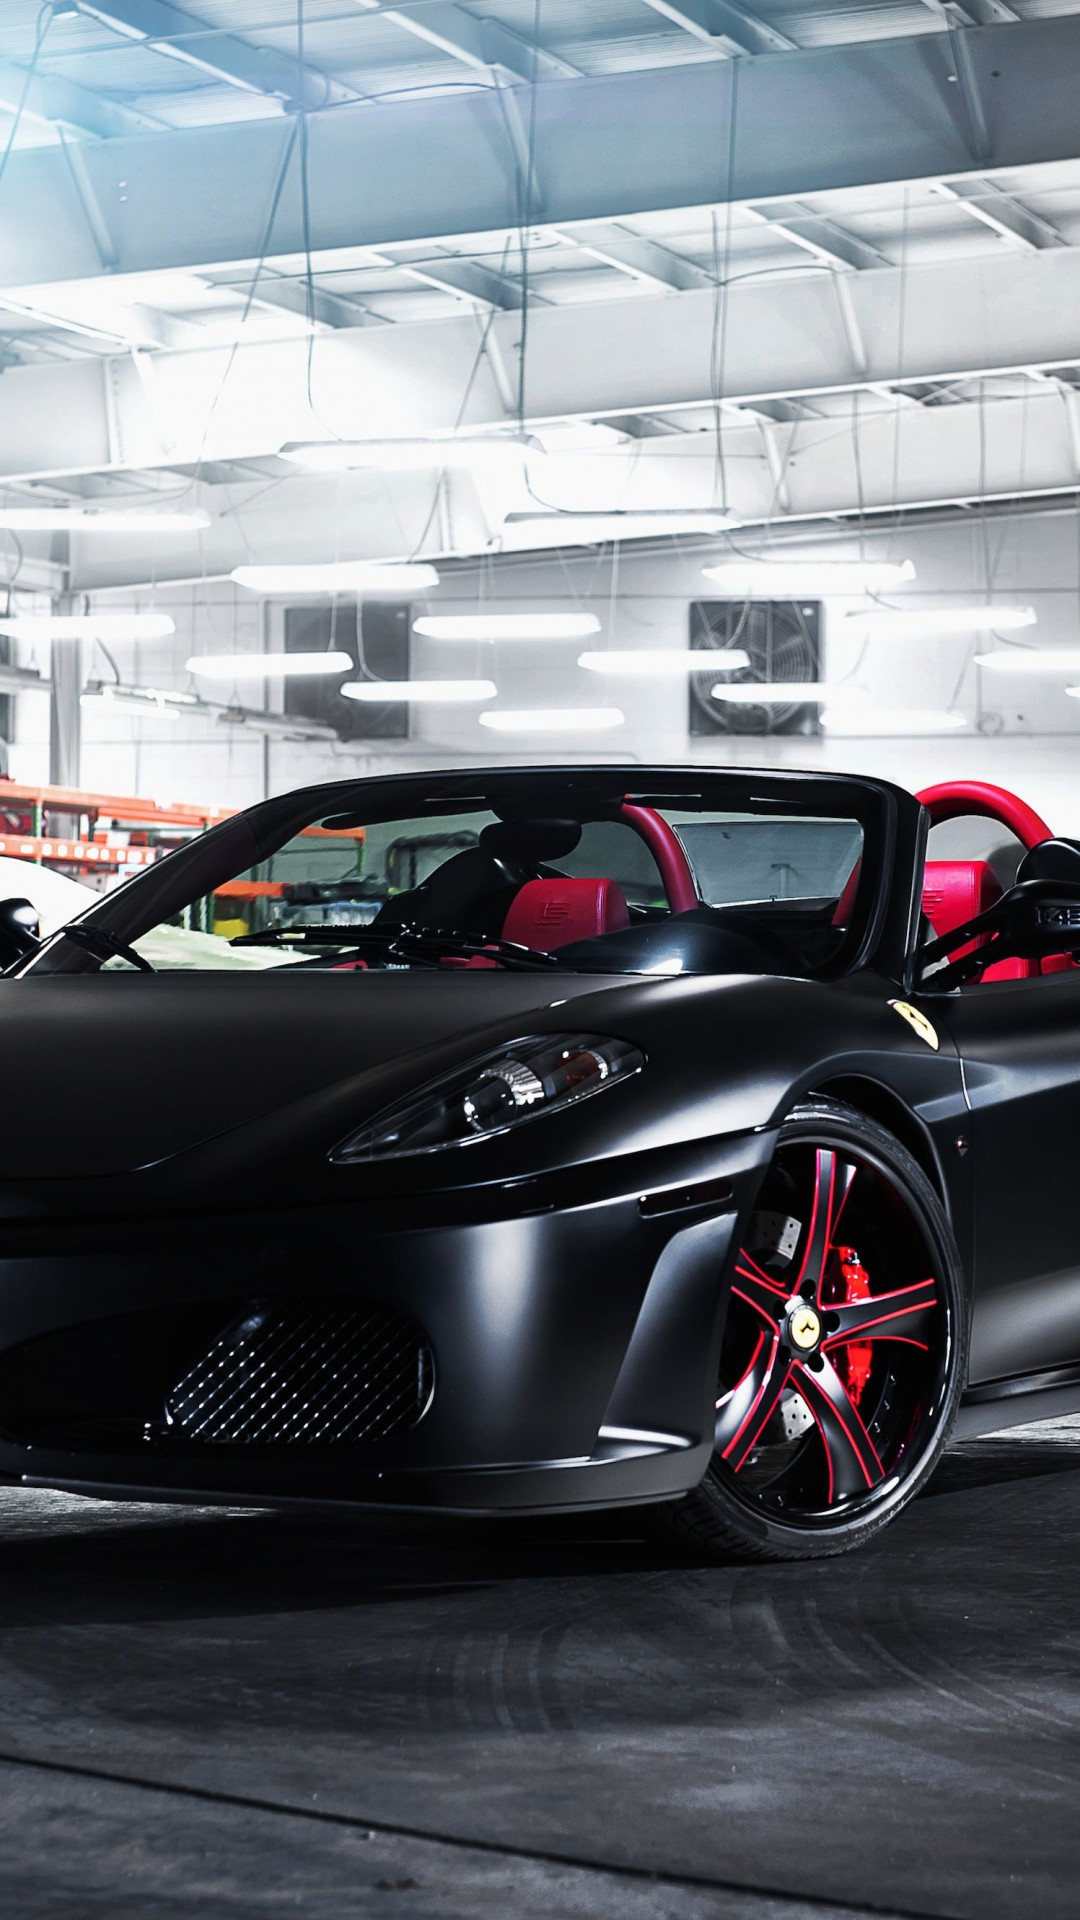 Matte Black Ferrari F430 on Savini Wheels Wallpaper for SAMSUNG Galaxy S5